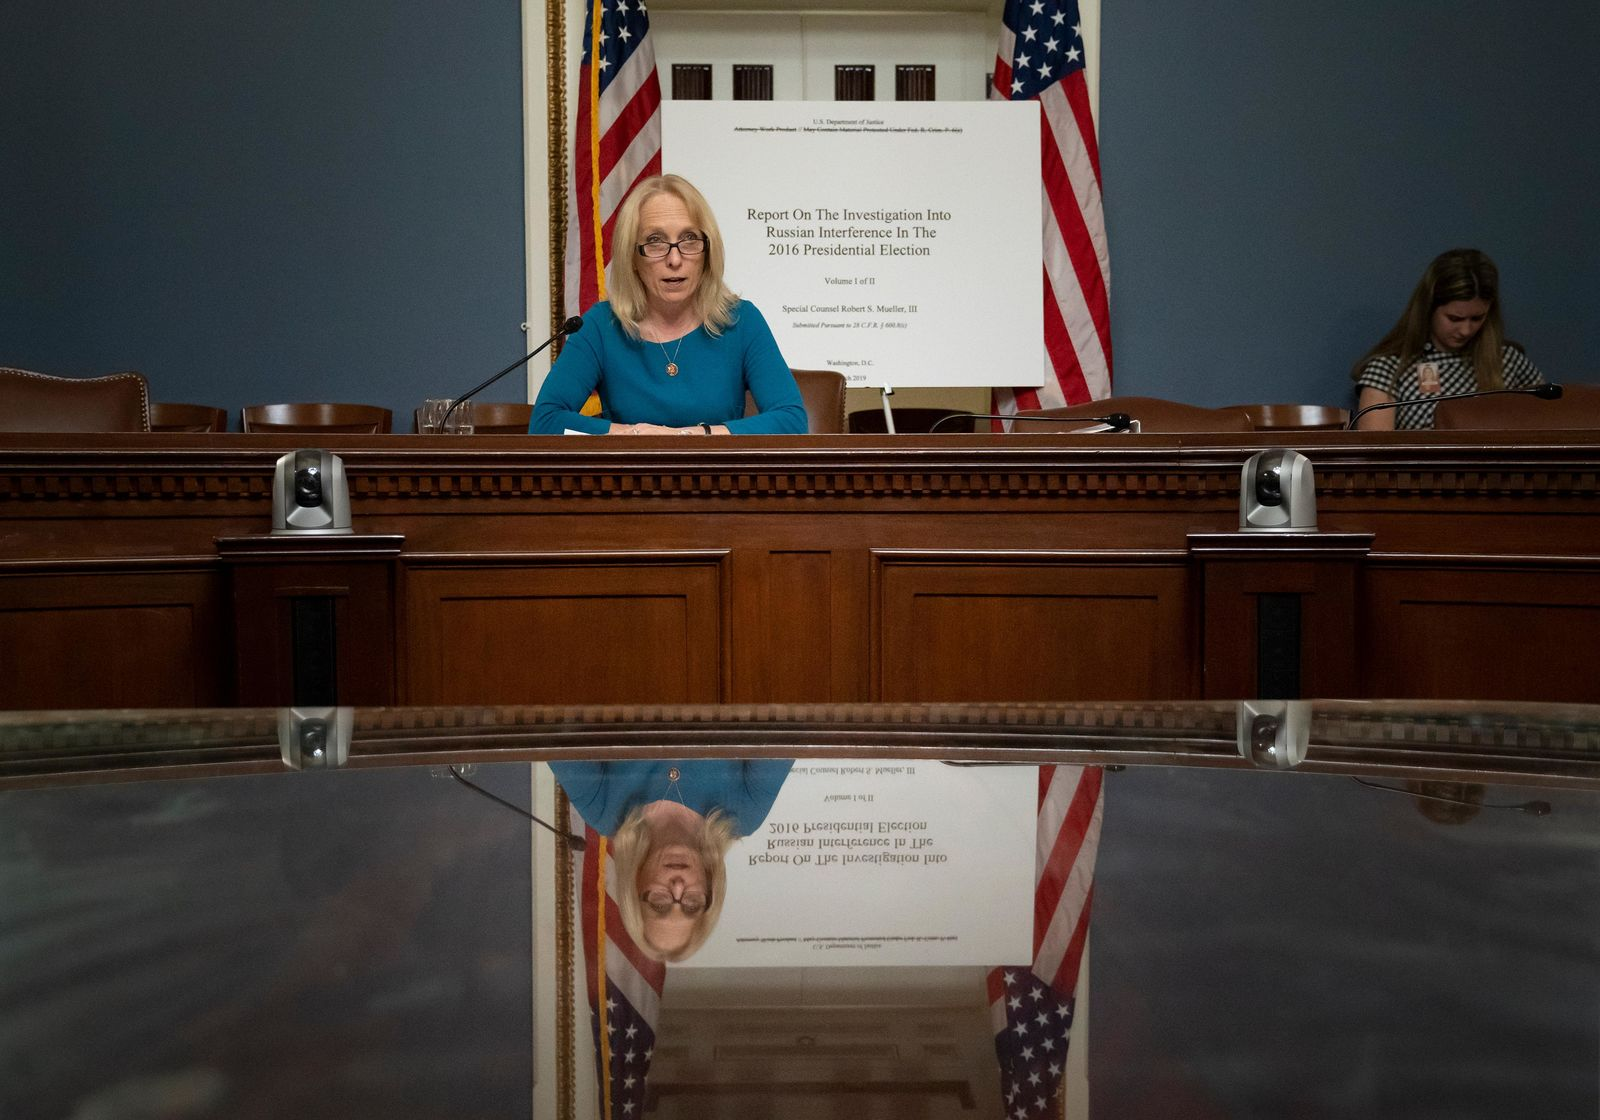 House Judiciary Committee member Rep. Mary Gay Scanlon, D-Pa., begins a complete reading of the report by special counsel Robert Mueller on Russian election interference, at the Capitol in Washington, Thursday, May 16, 2019. (AP Photo/J. Scott Applewhite)